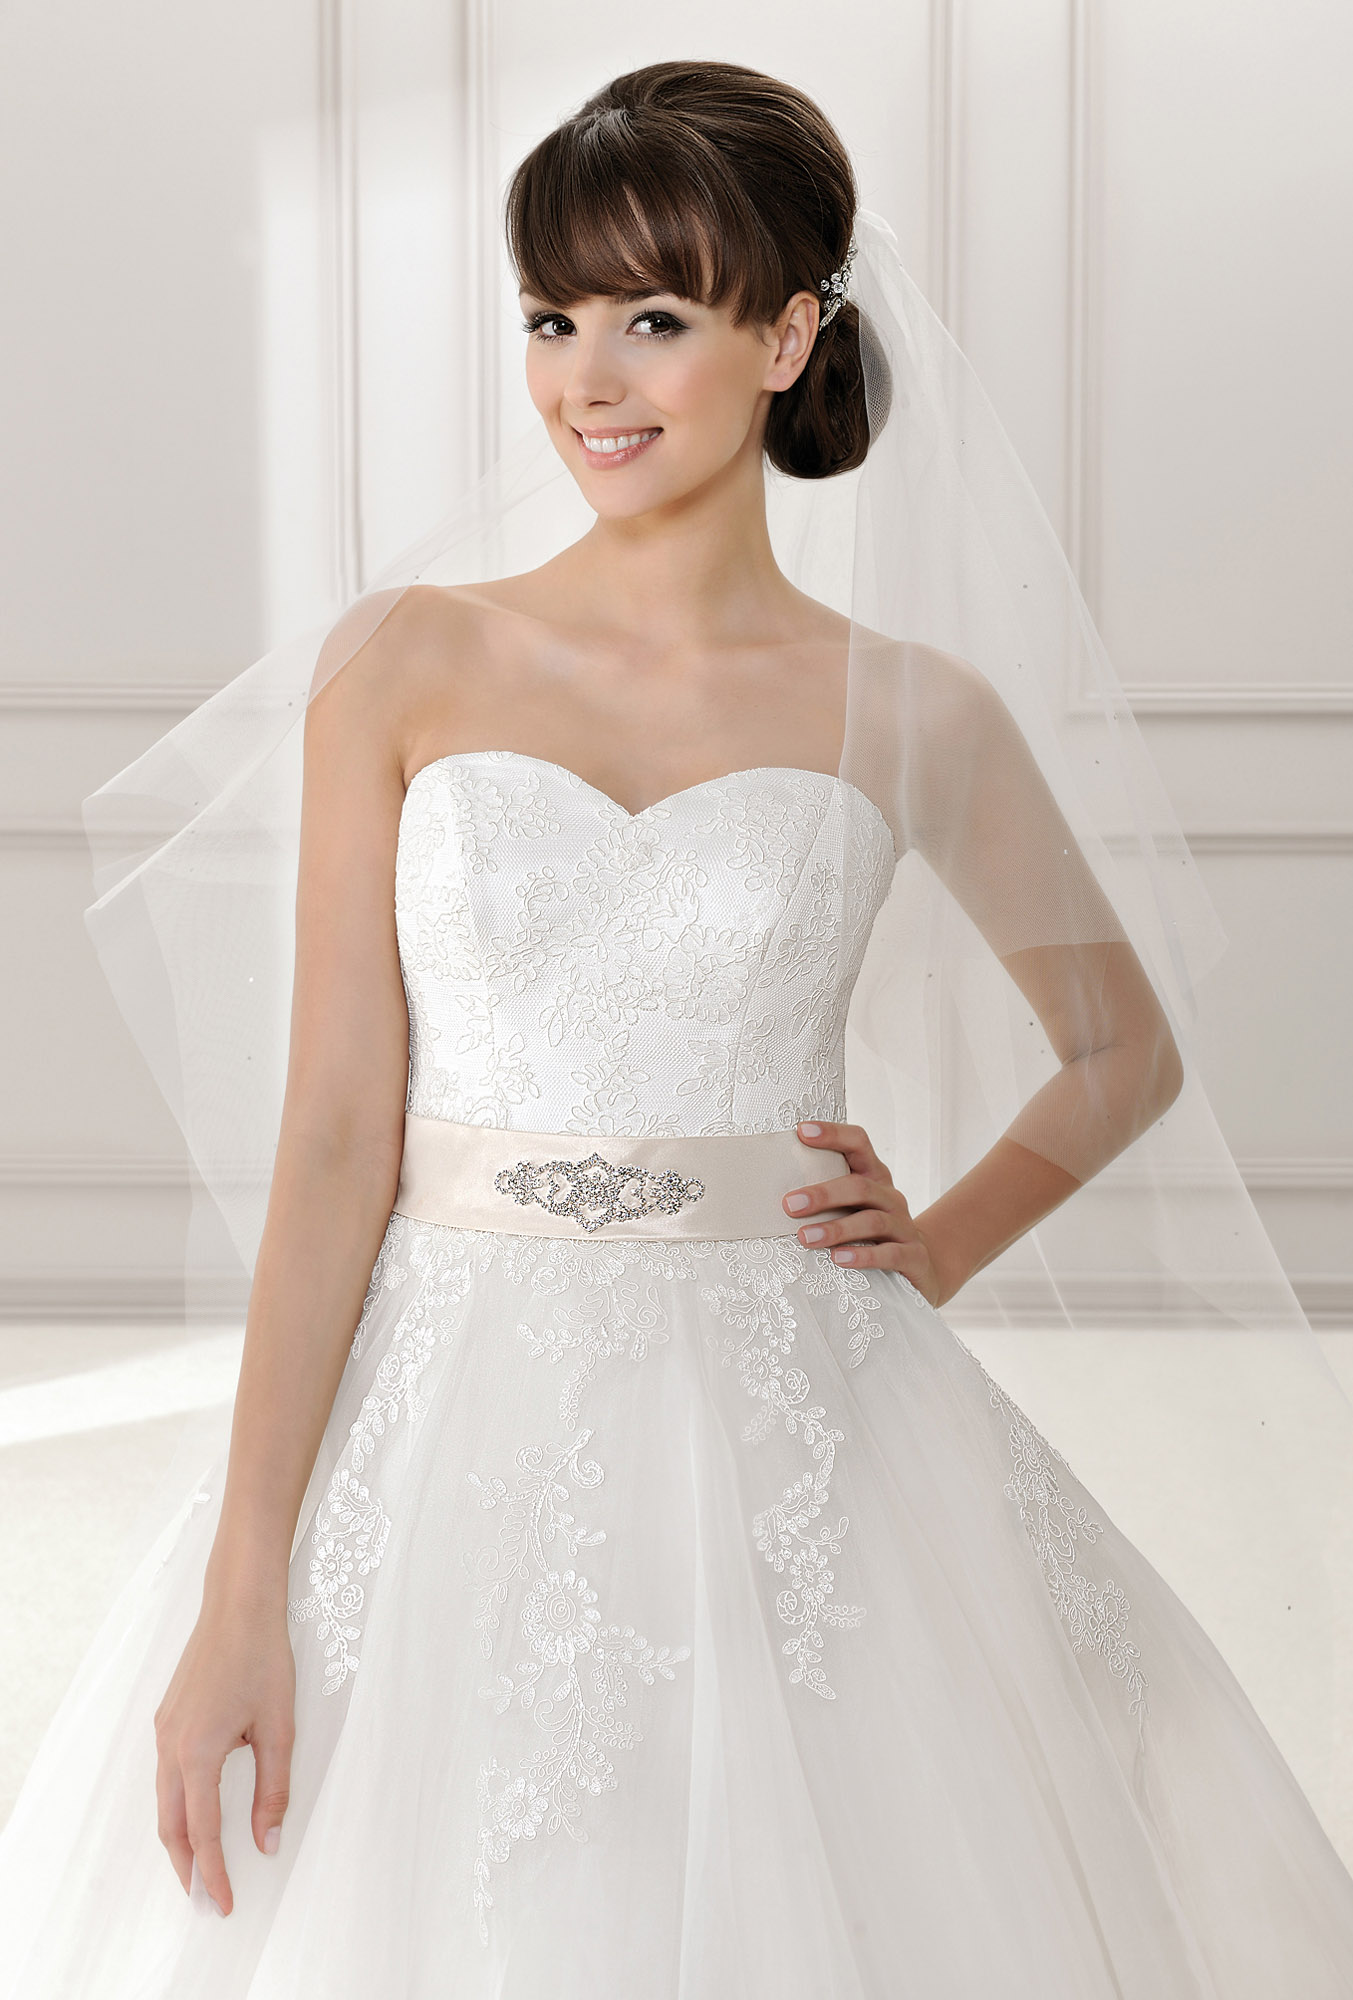 11411 Sh 66 Inspired Collection Wedding Dresses